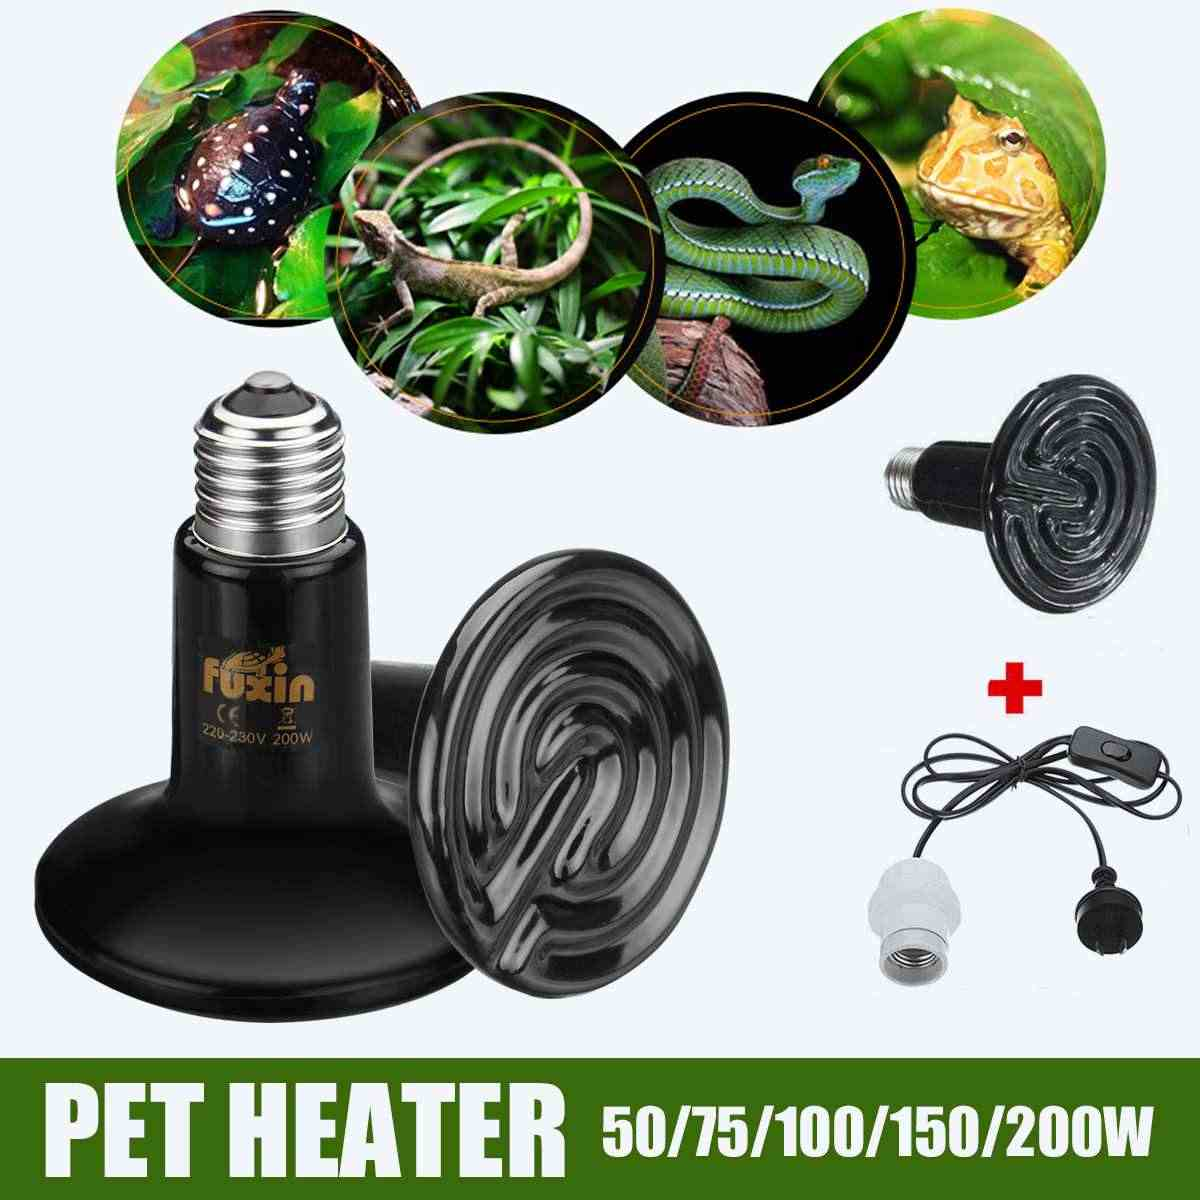 Pet Heater AU Plug 240V 90mm Ceramic Heat Lamp+Holder with 1.5m Cable Mini-type Reptile Infrared Heater Temperature Control